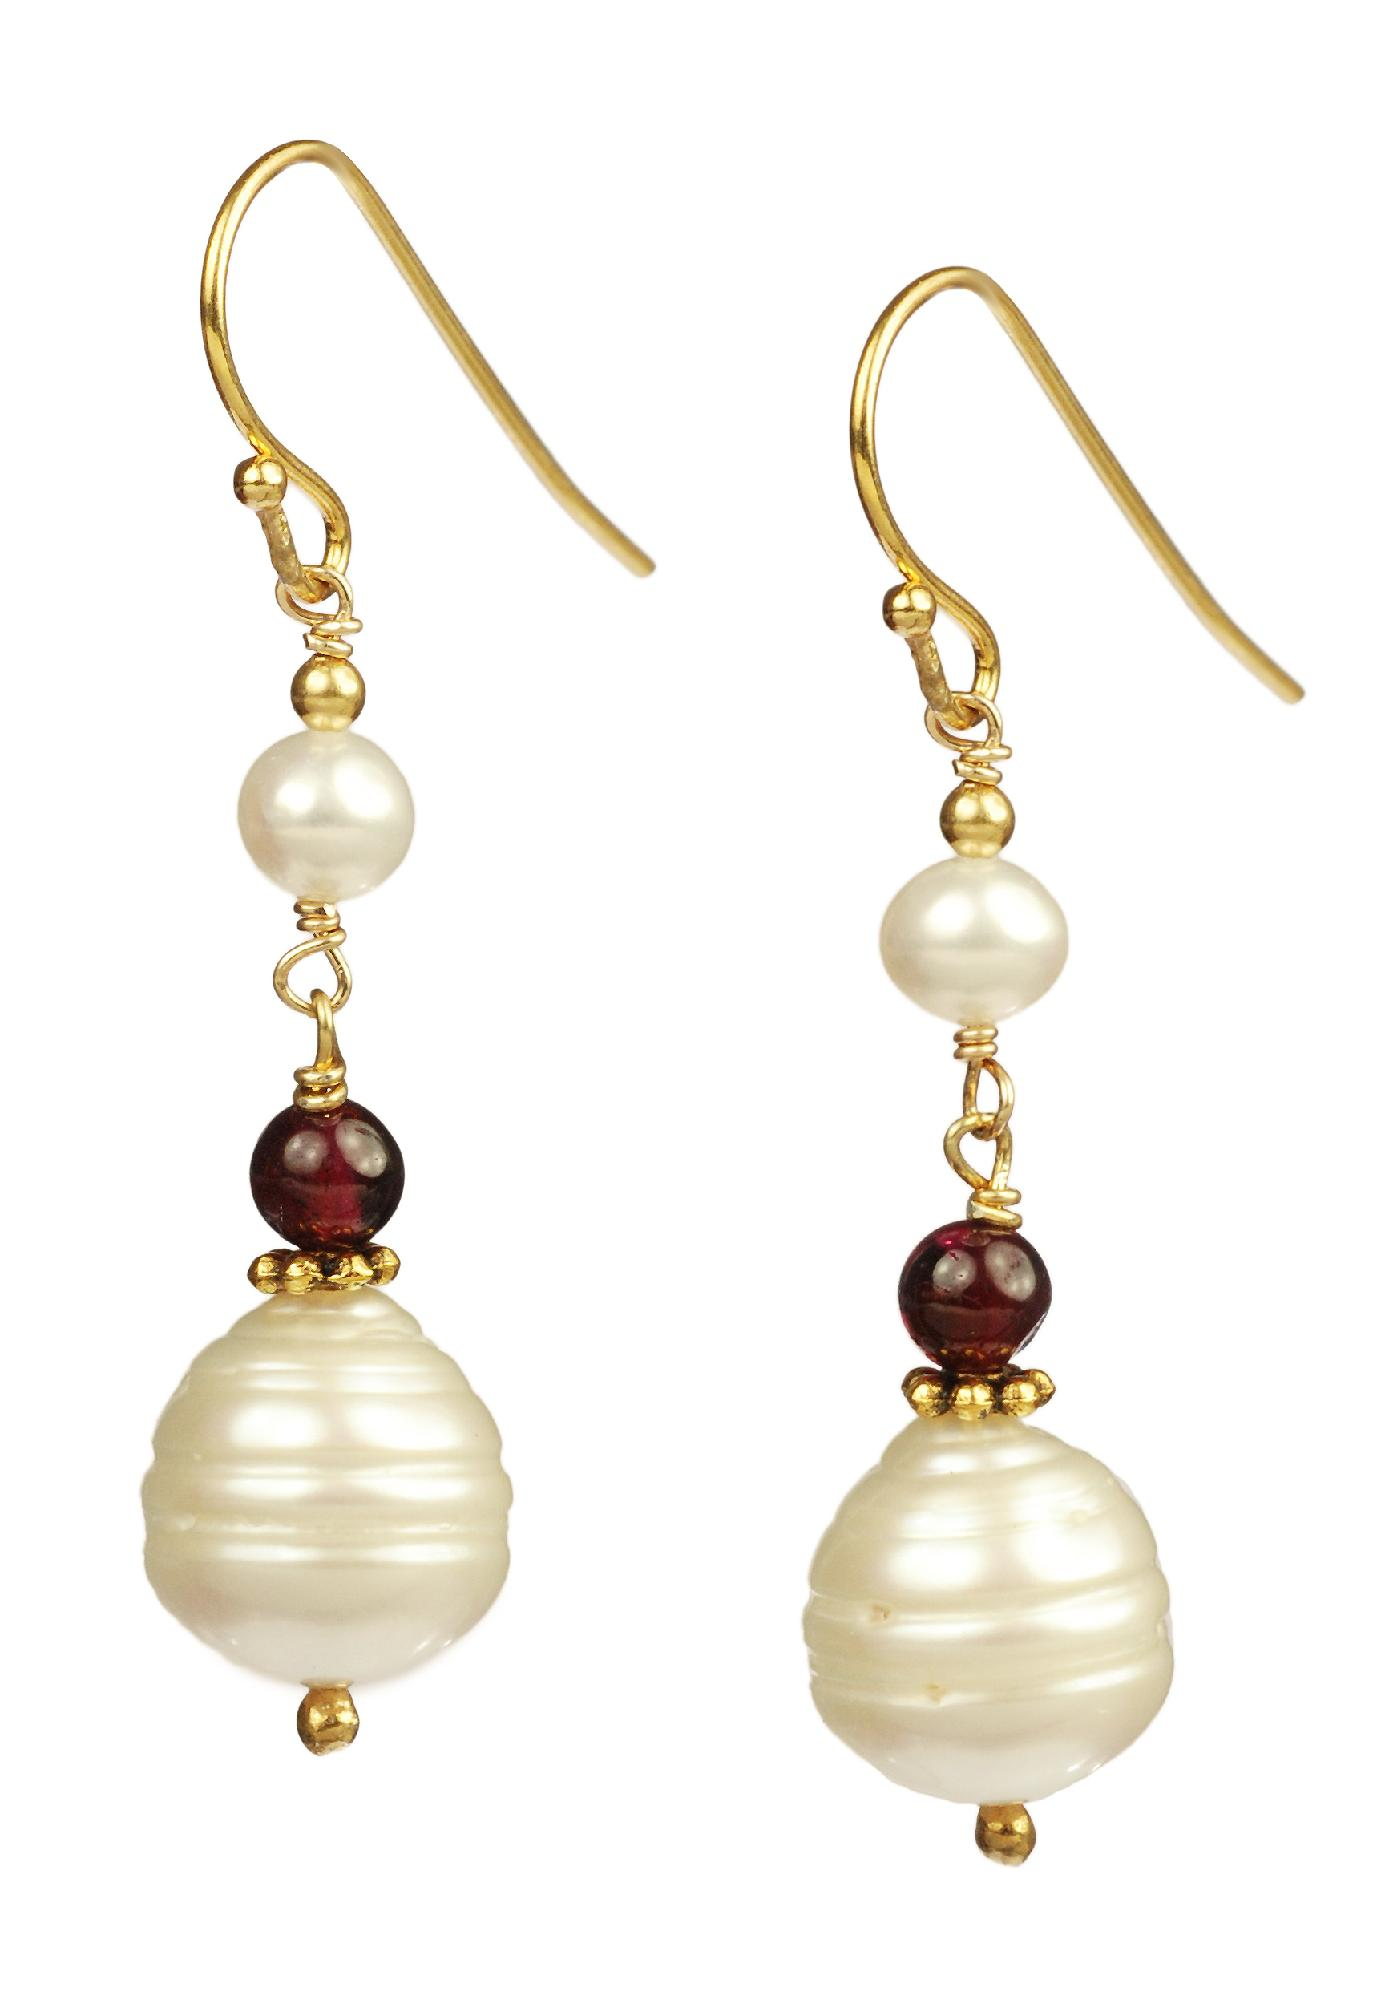 Garnet and Ringed Pearls With Gold Plated